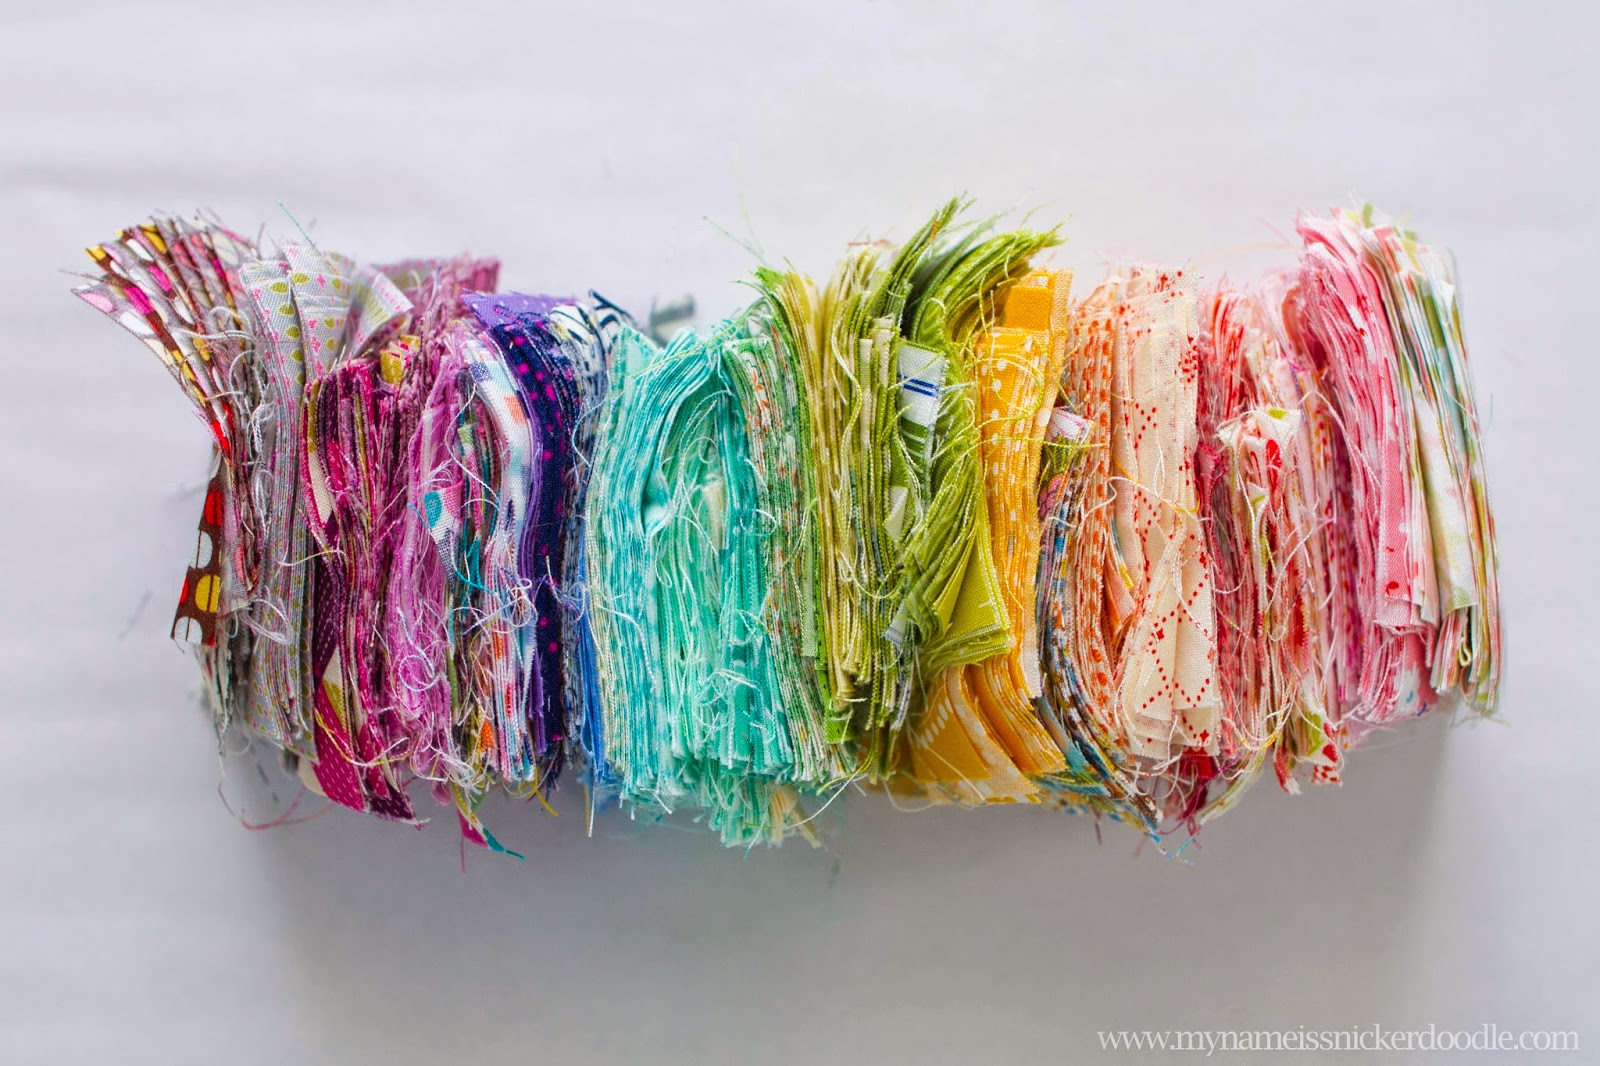 Lucious fabrics in rainbow colors | My Name Is Snickerdoodle